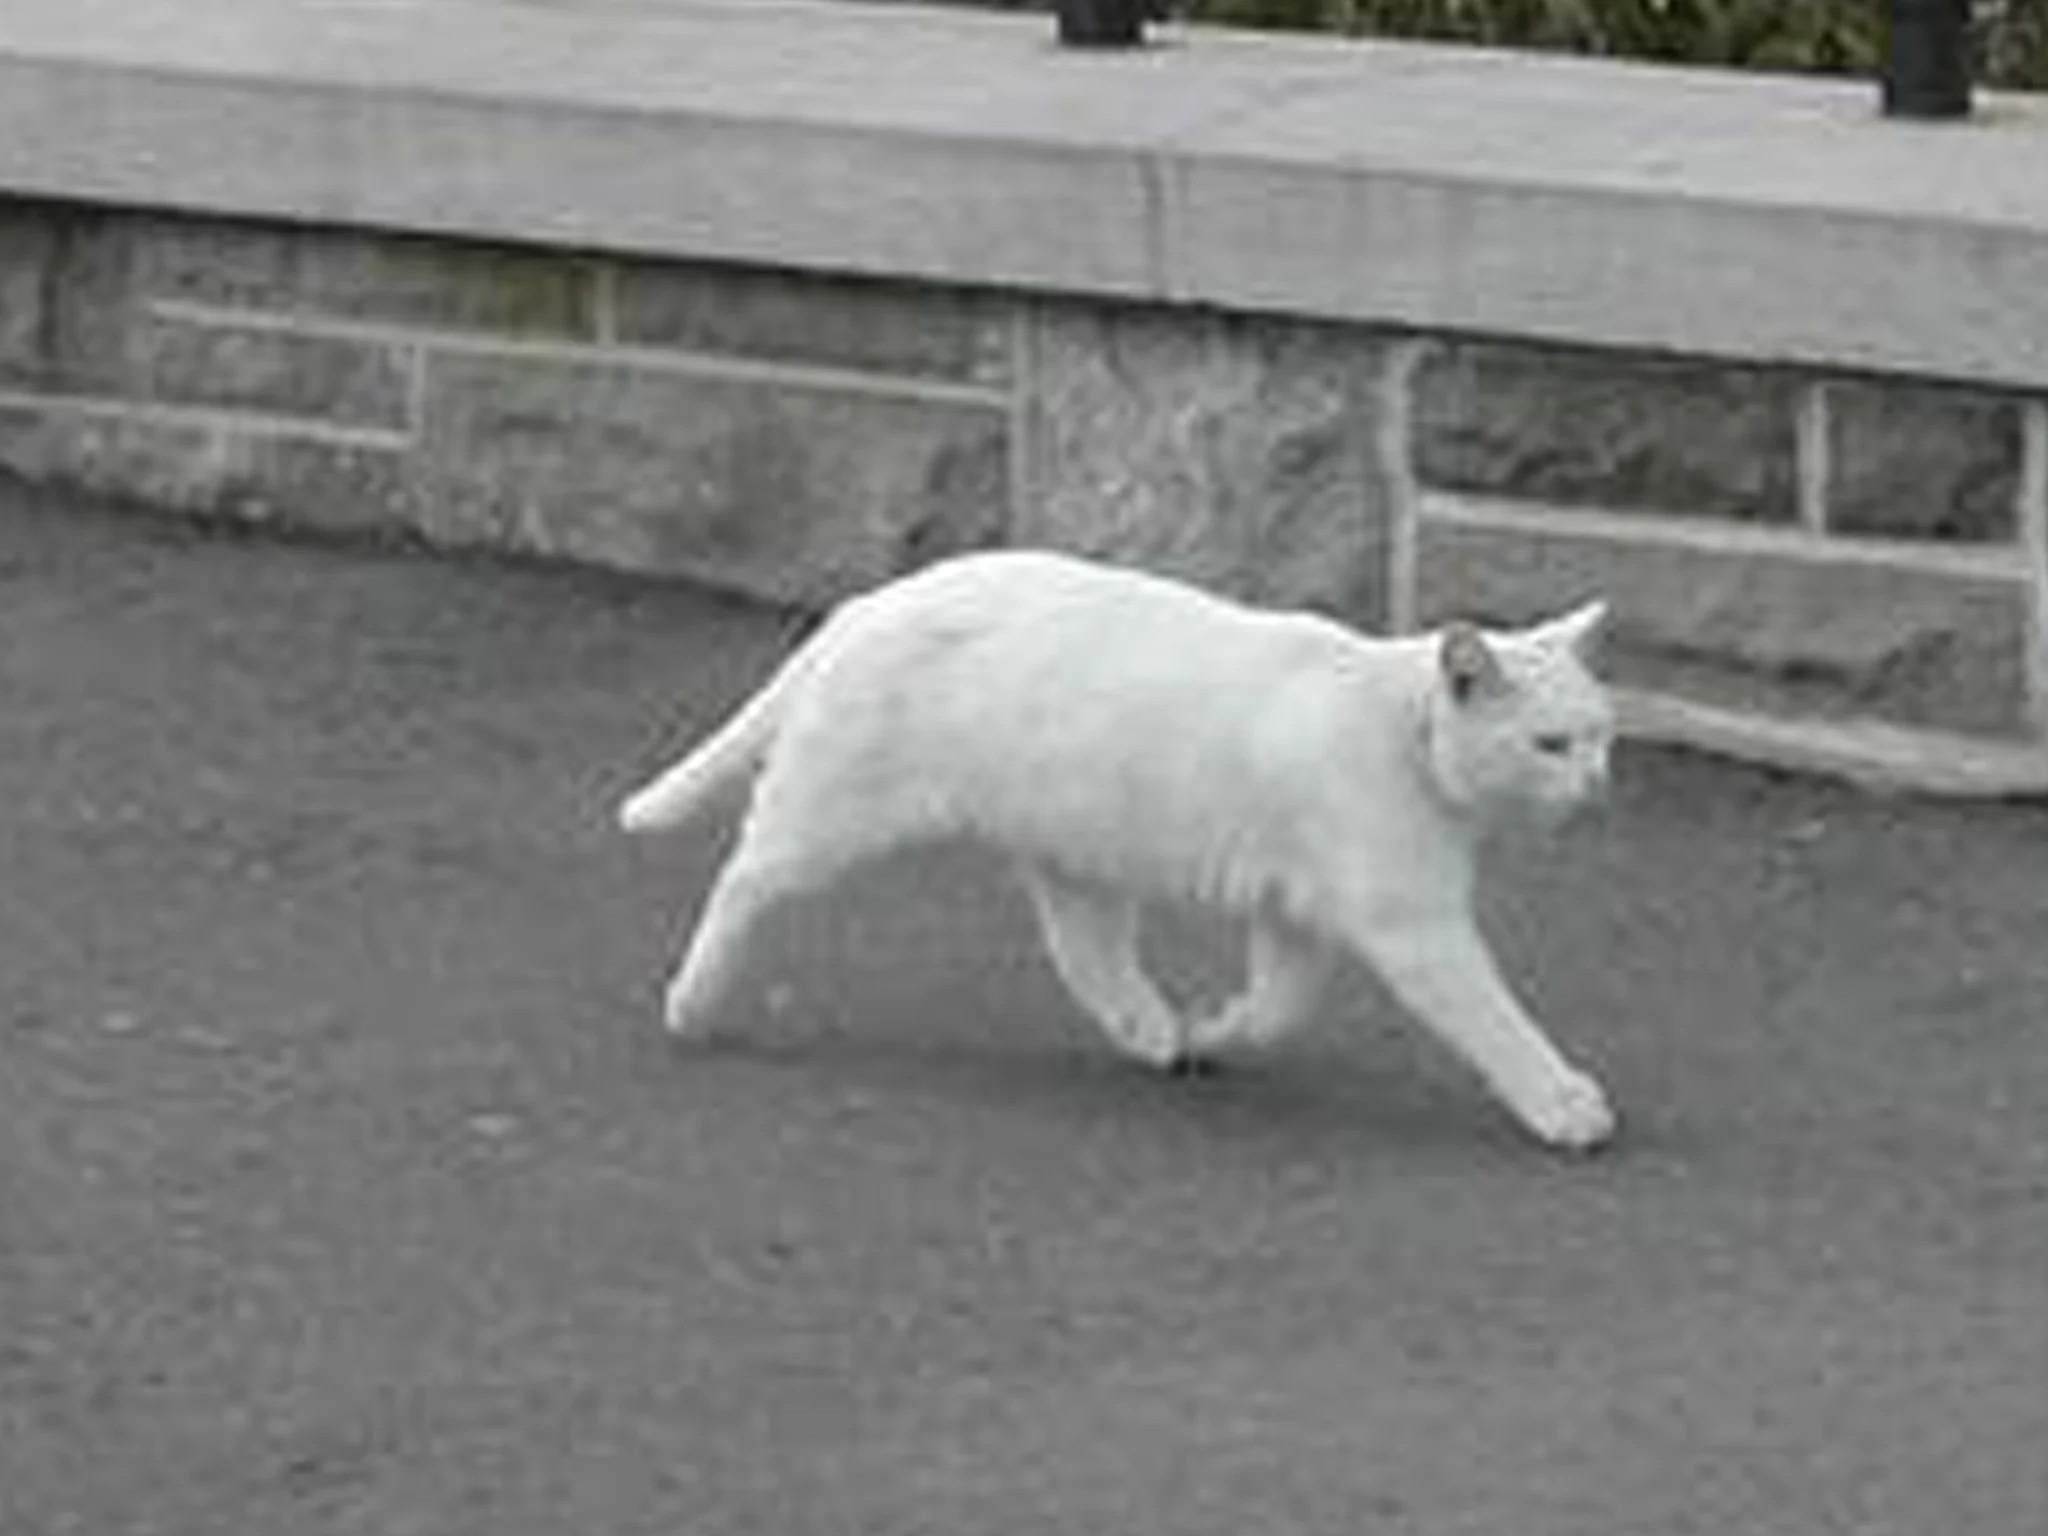 Revealed The Half Cat Not Created By Google Street View The